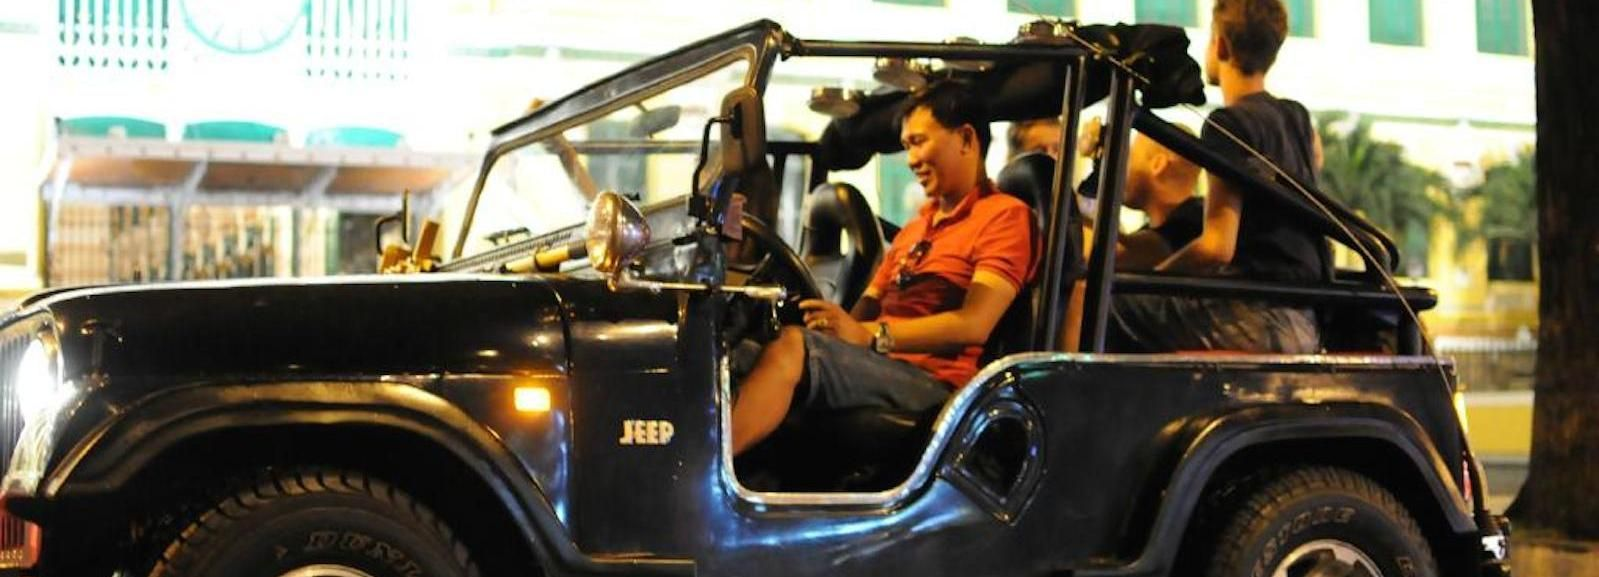 Private Jeep Tour Saigon by Night & Cruise Dinner with Music